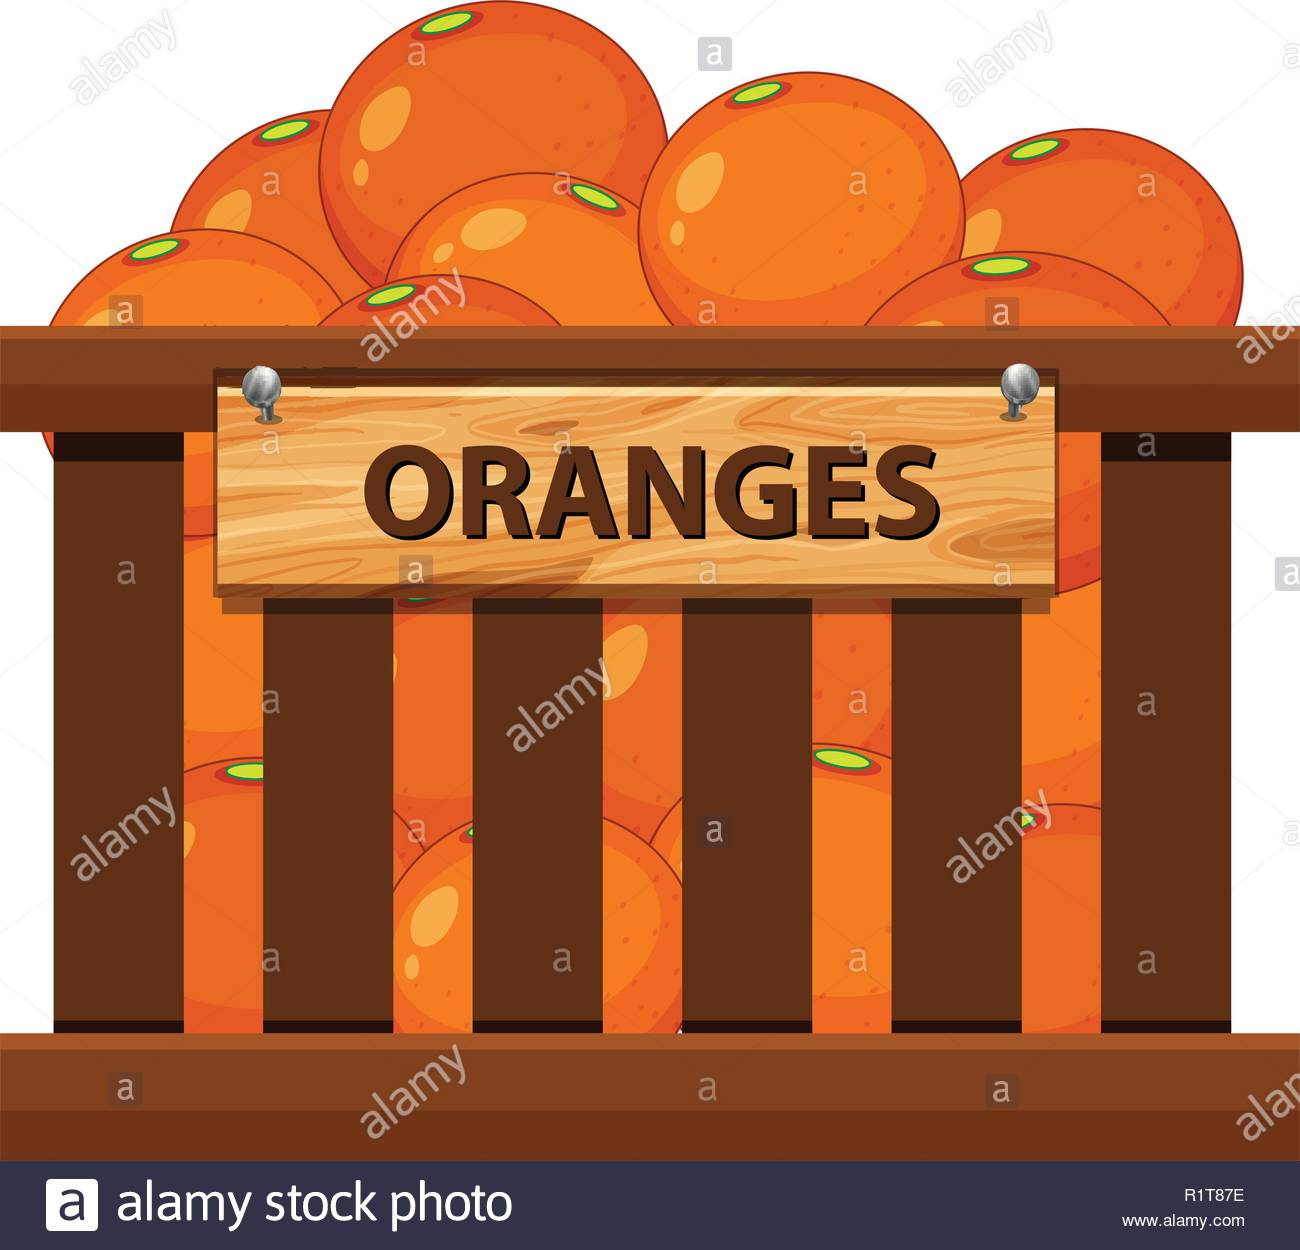 Orange in the wooden crate illustration Stock Vector Art.